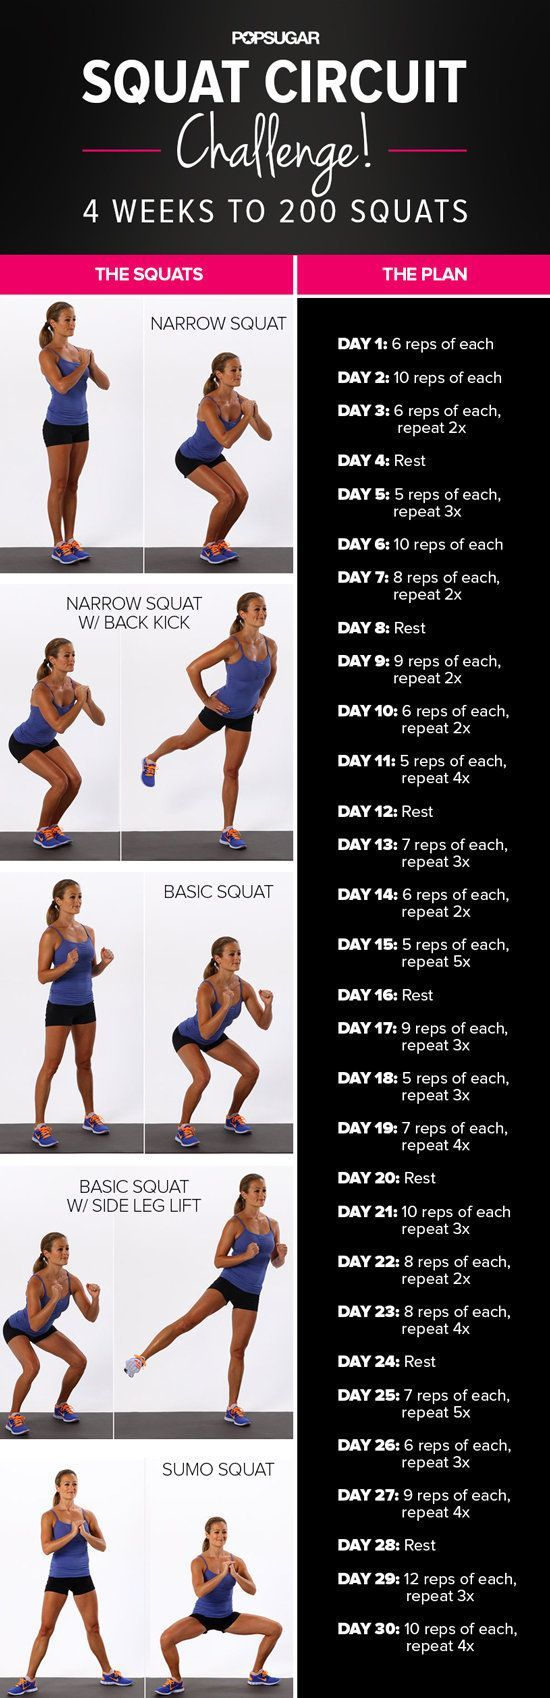 This squat challenge involves five different squat variations that you repeat and eventually work up to 200 reps in 30 days. It's no joke!